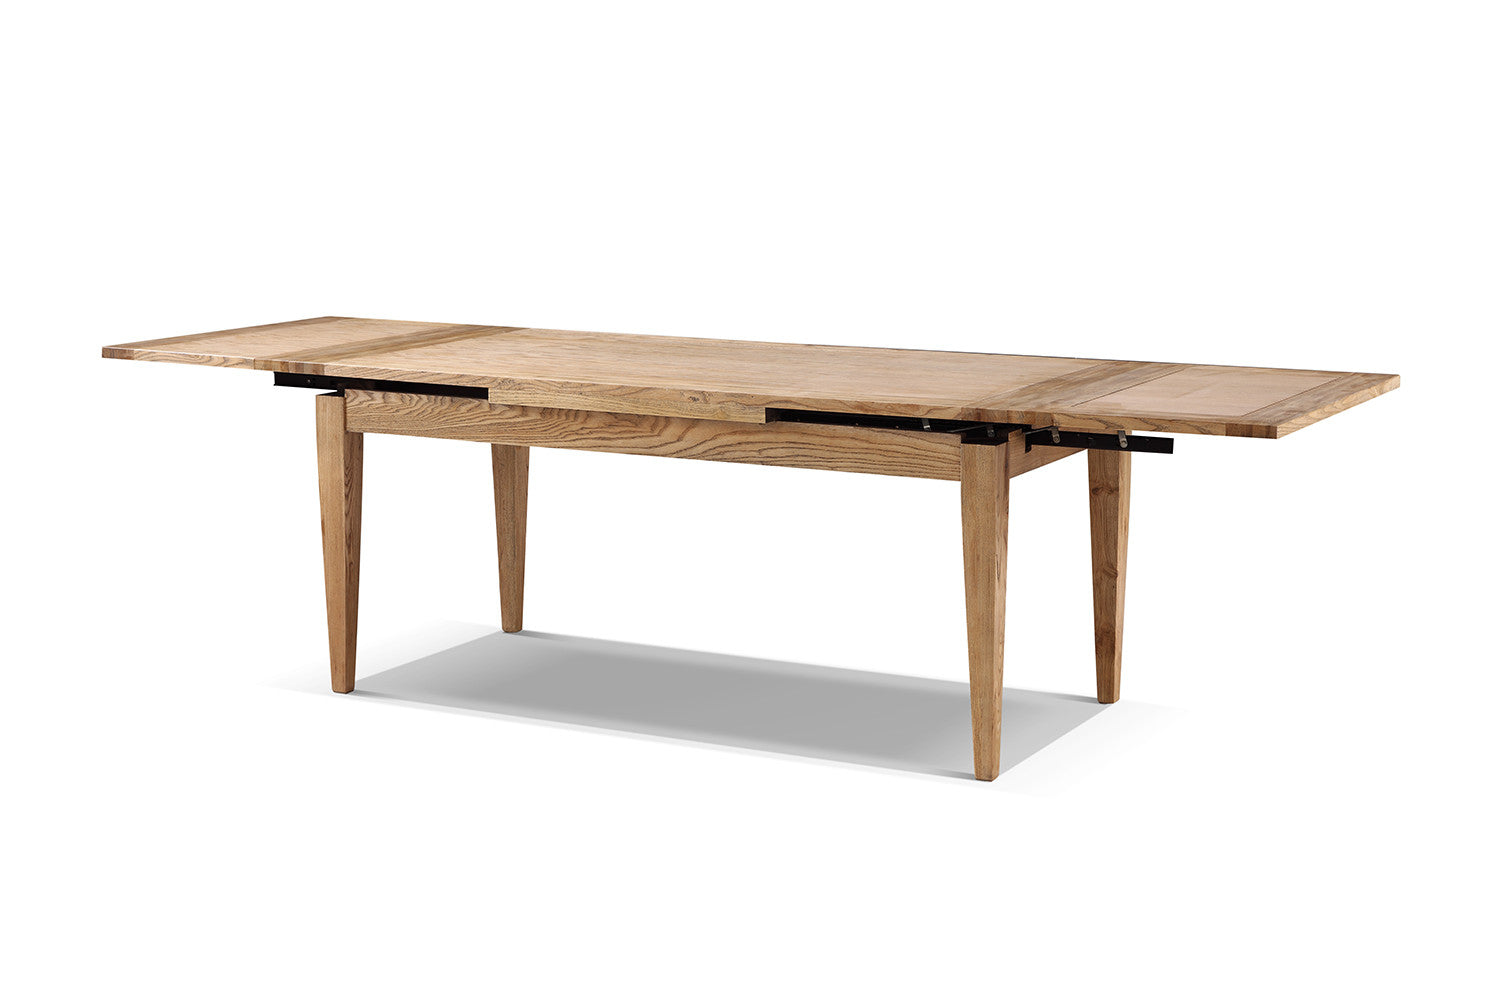 Table manger cottage en bois extensible rose moore Table a manger rectangulaire extensible